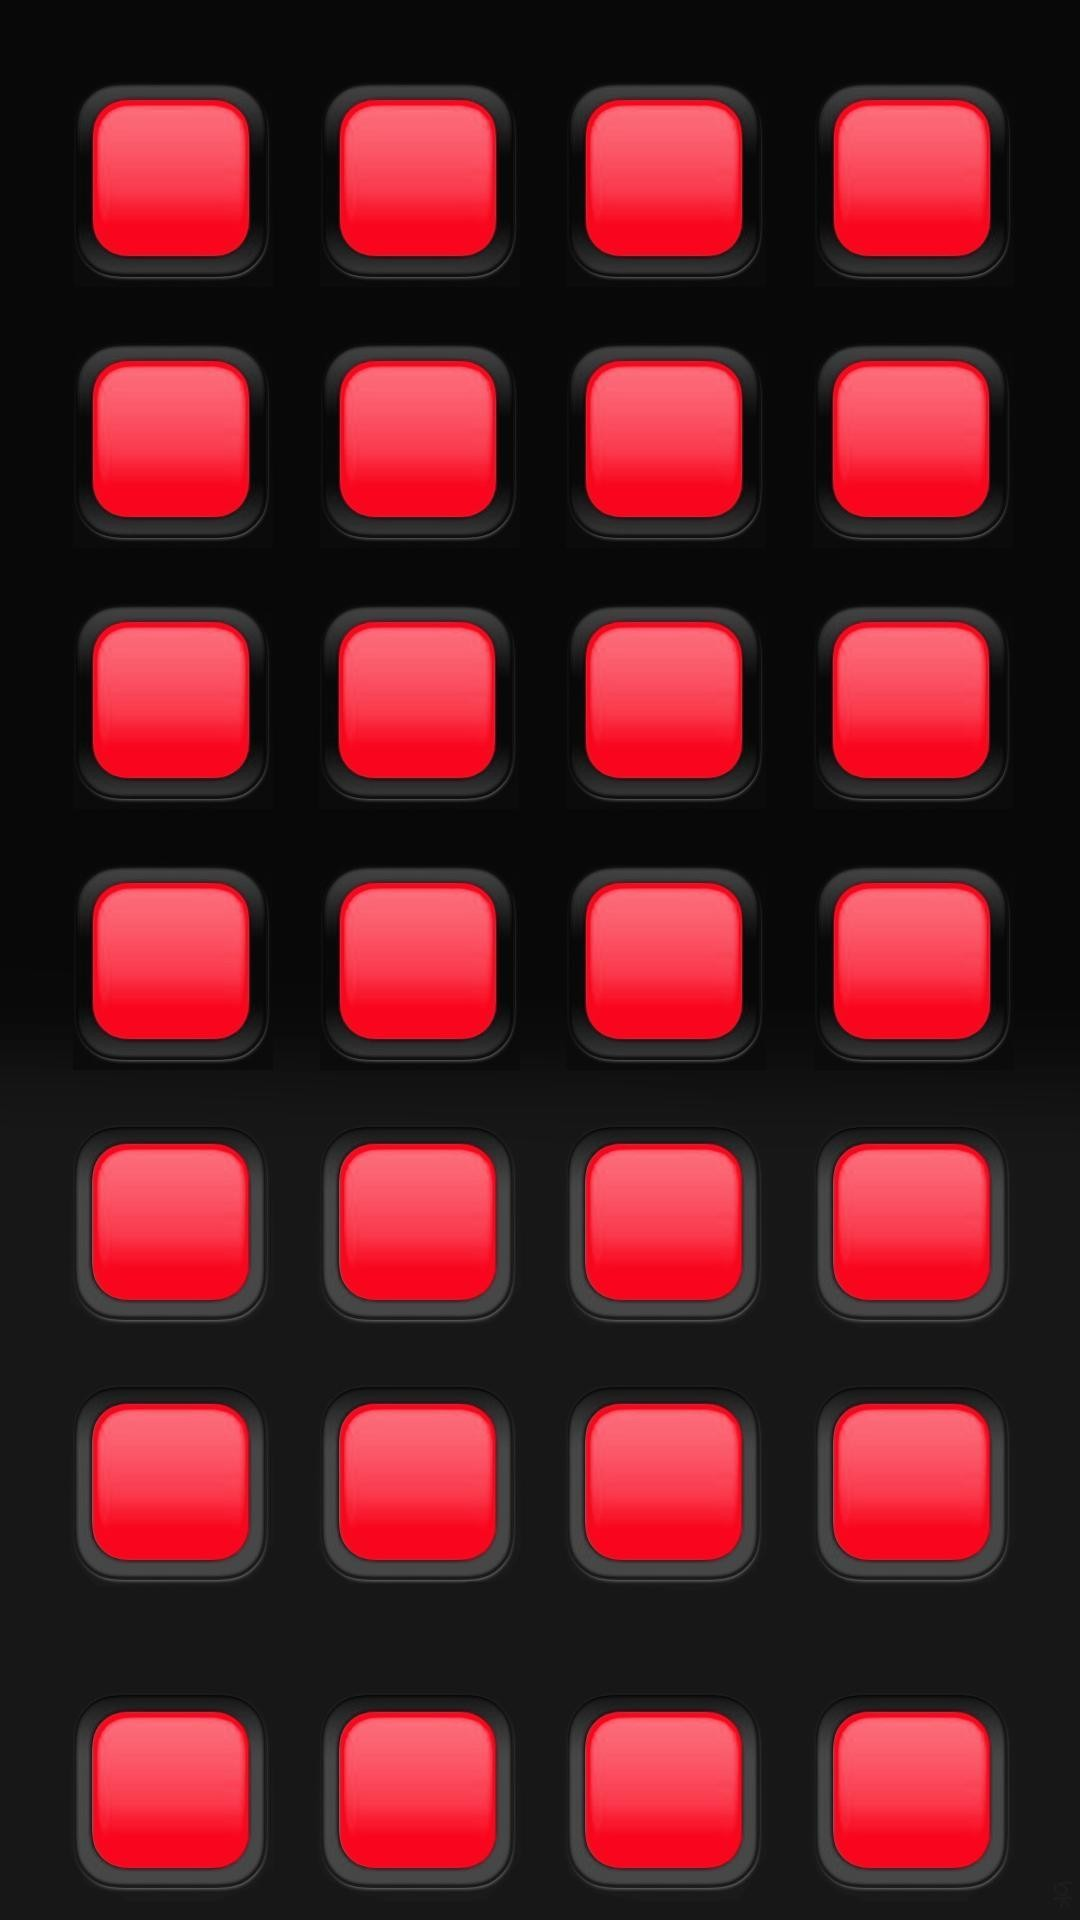 Black And Red Iphone Wallpaper 67 Images